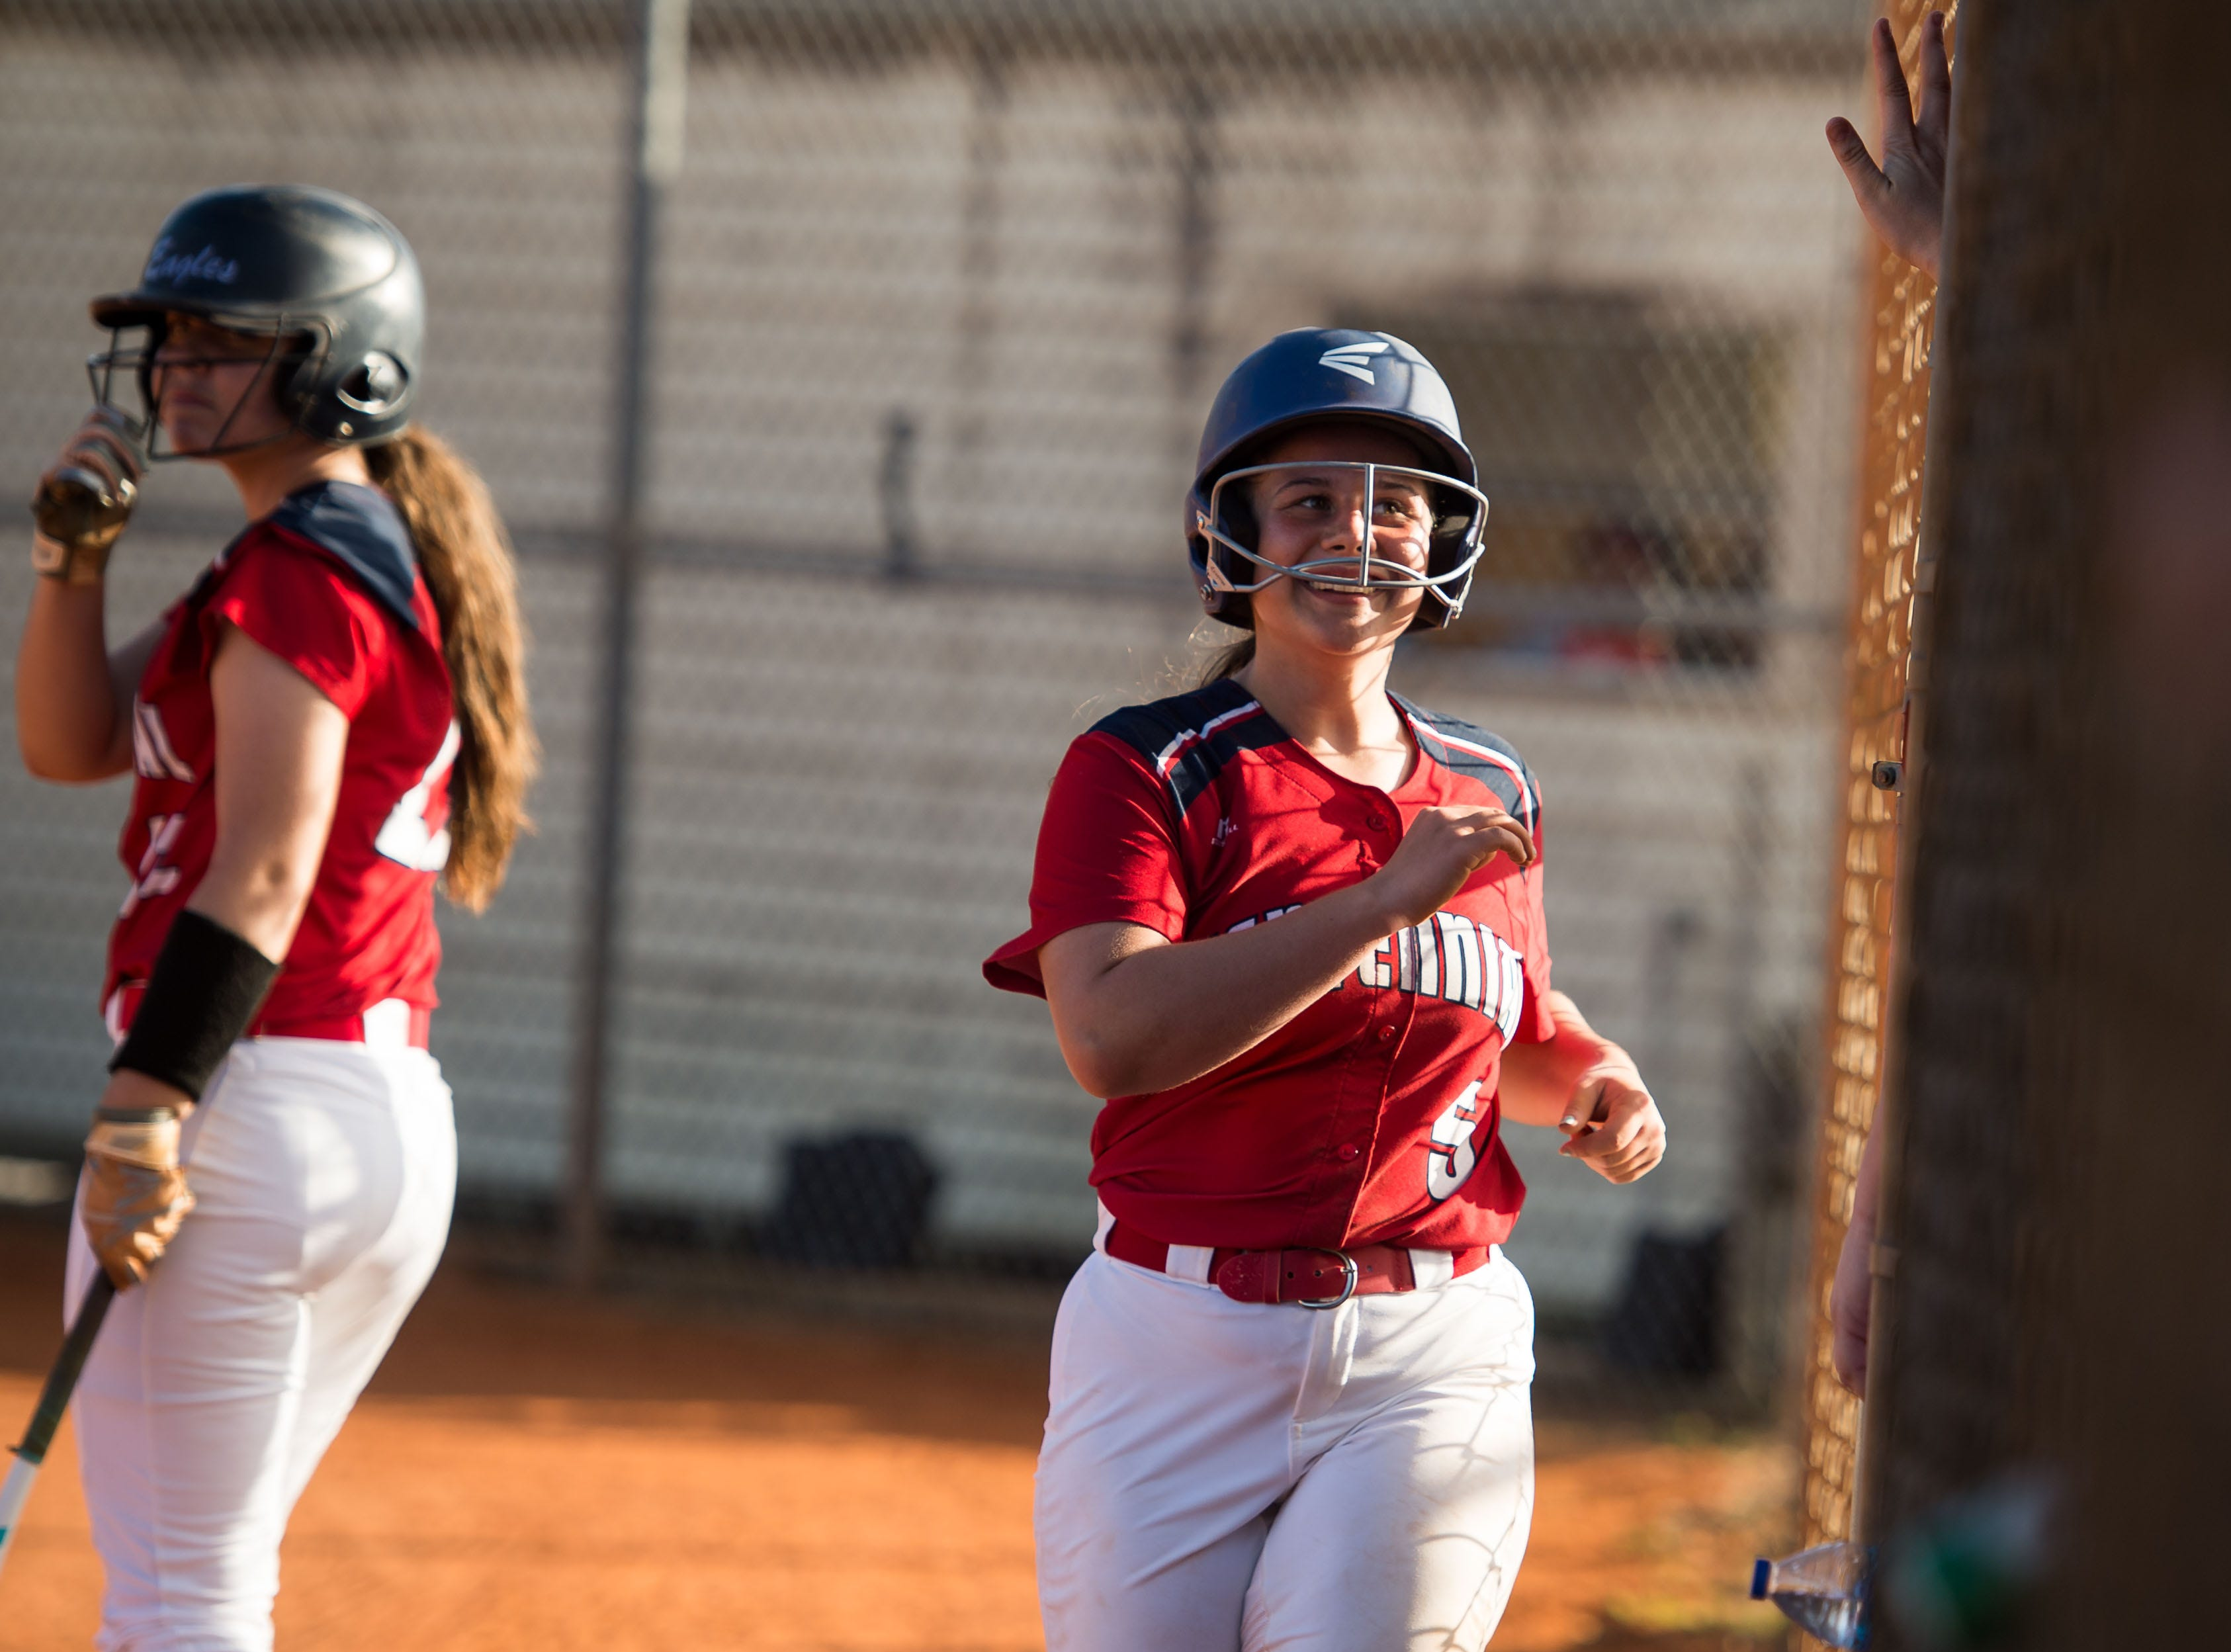 St. Lucie West Centennial's Jayden Sullivan runs back to the dugout triumphantly after stealing home to score in the second inning against Port St. Lucie during the high school softball game Wednesday, Feb. 20, 2019, at St. Lucie West Centennial High School in Port St. Lucie.